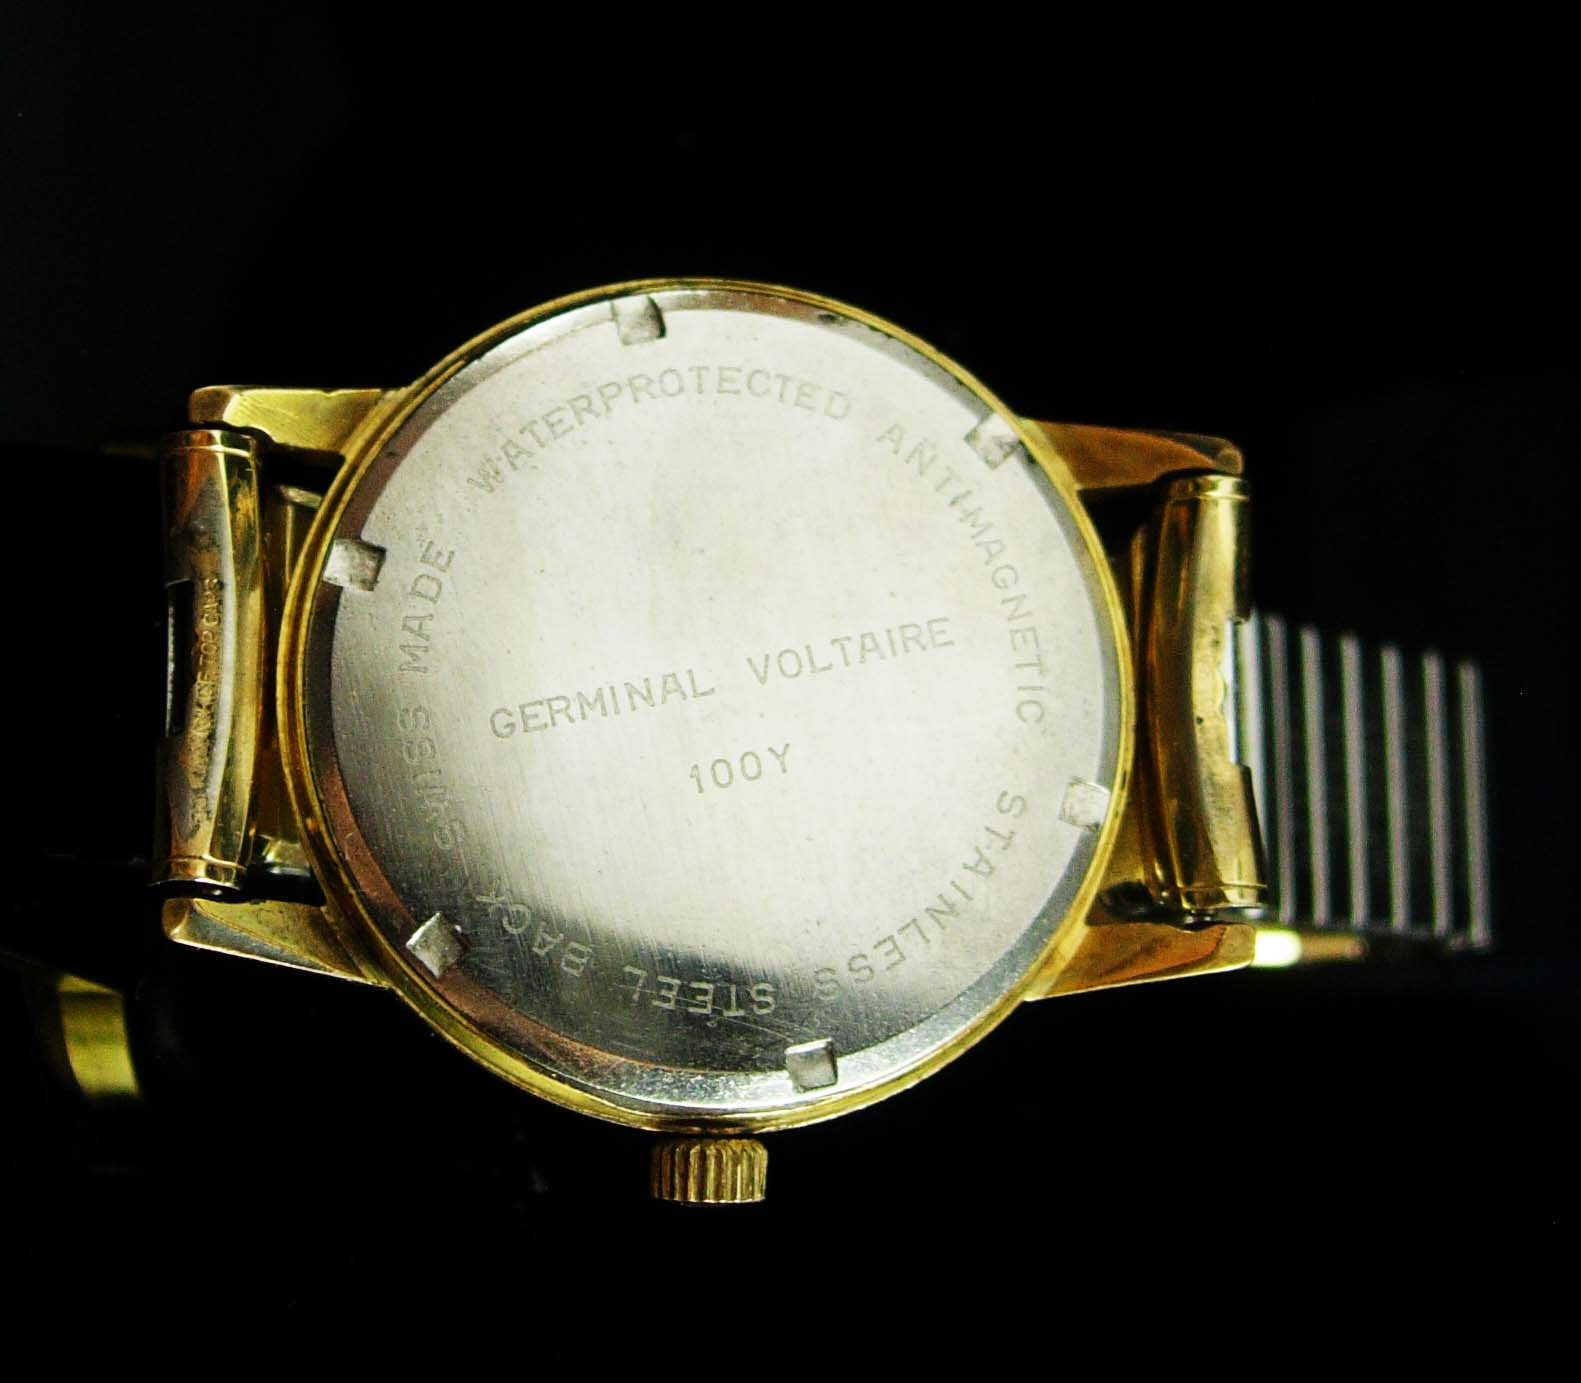 Vintage watch Germinal Voltaire 17 Jewel mens watch swiss watch manual Wind Mens image 3